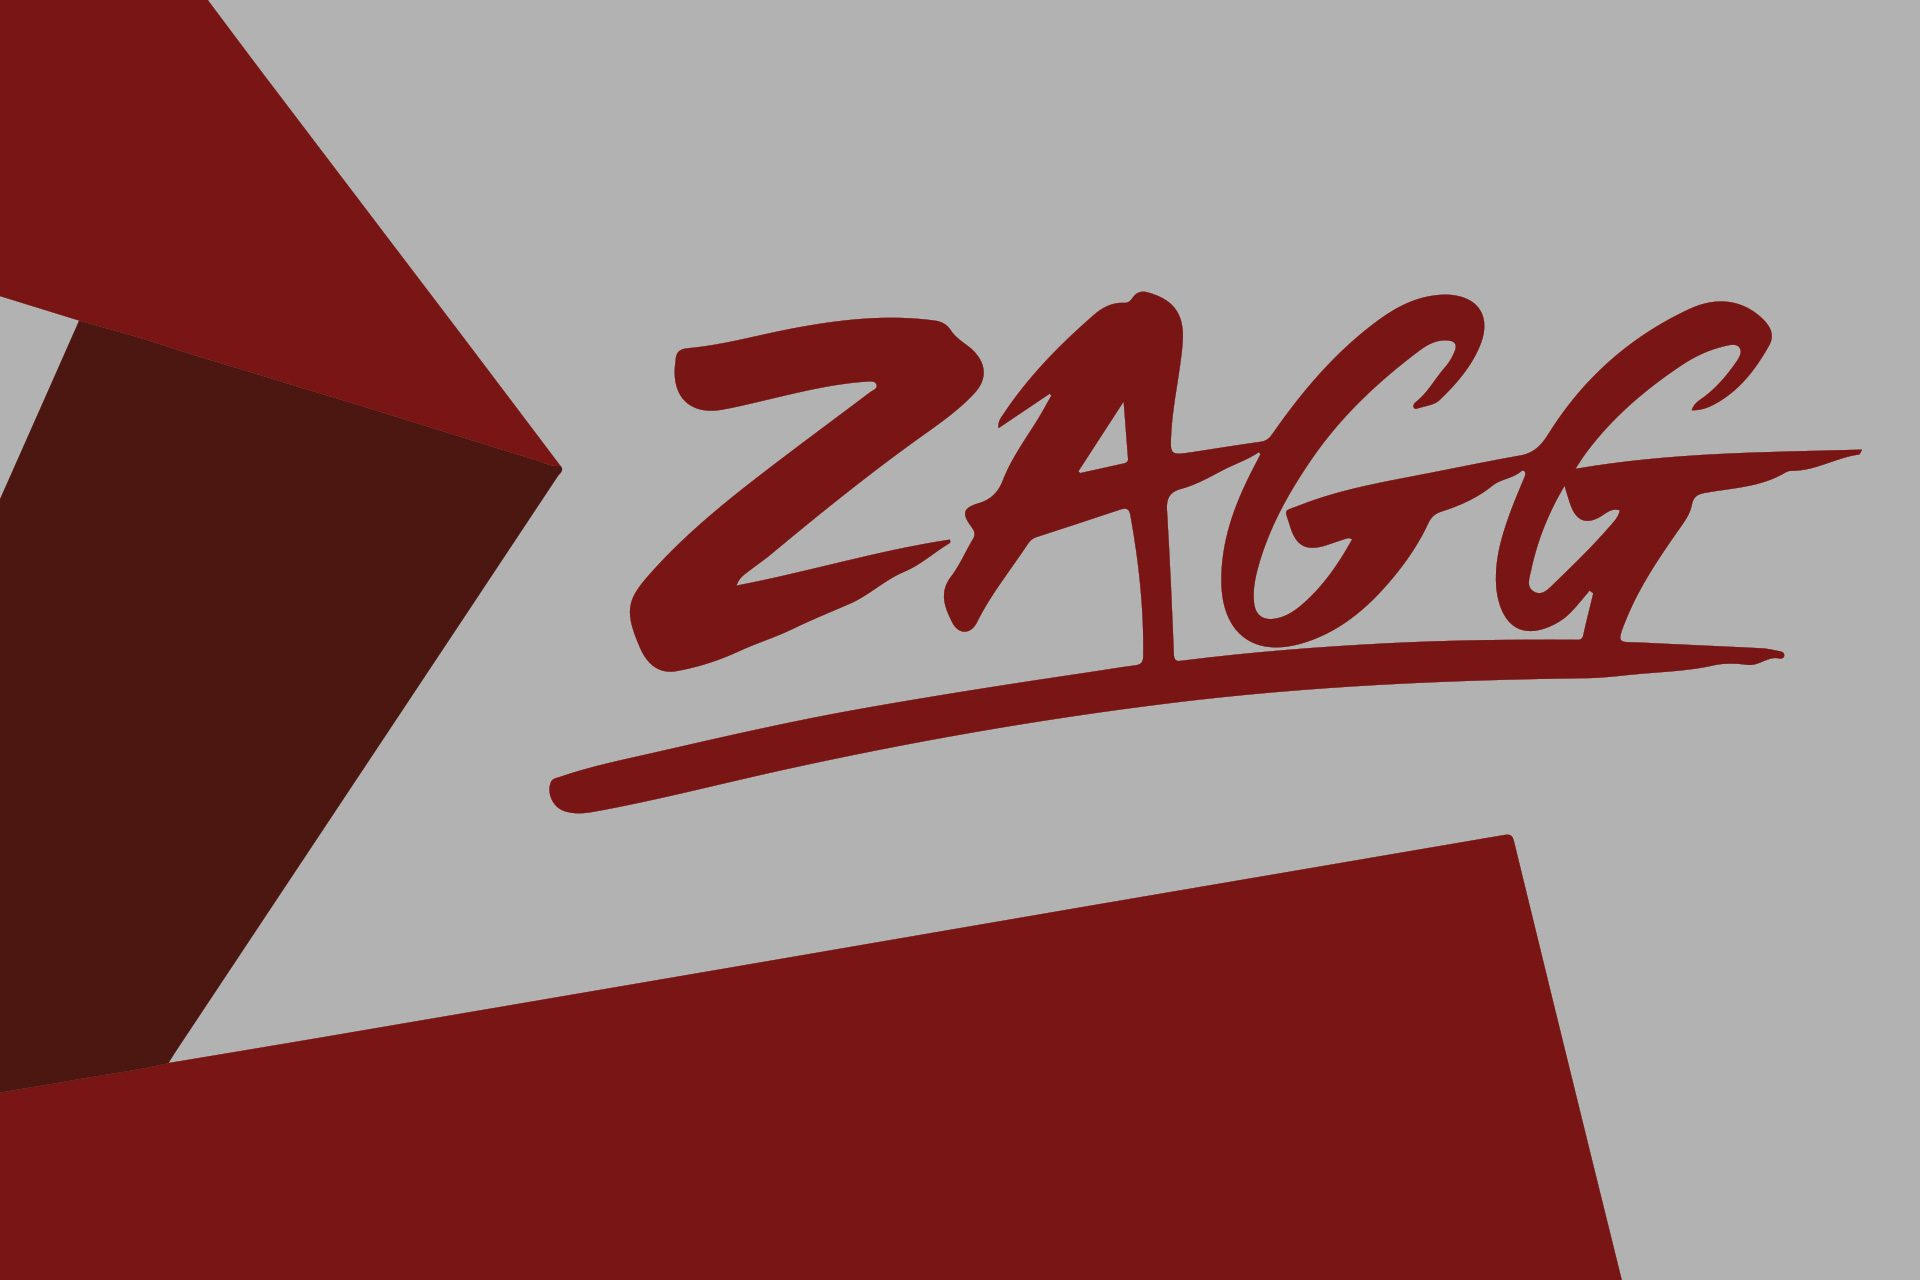 Rancilio Group will be in Lucerne from 21 to 24 October for ZAGG 2018